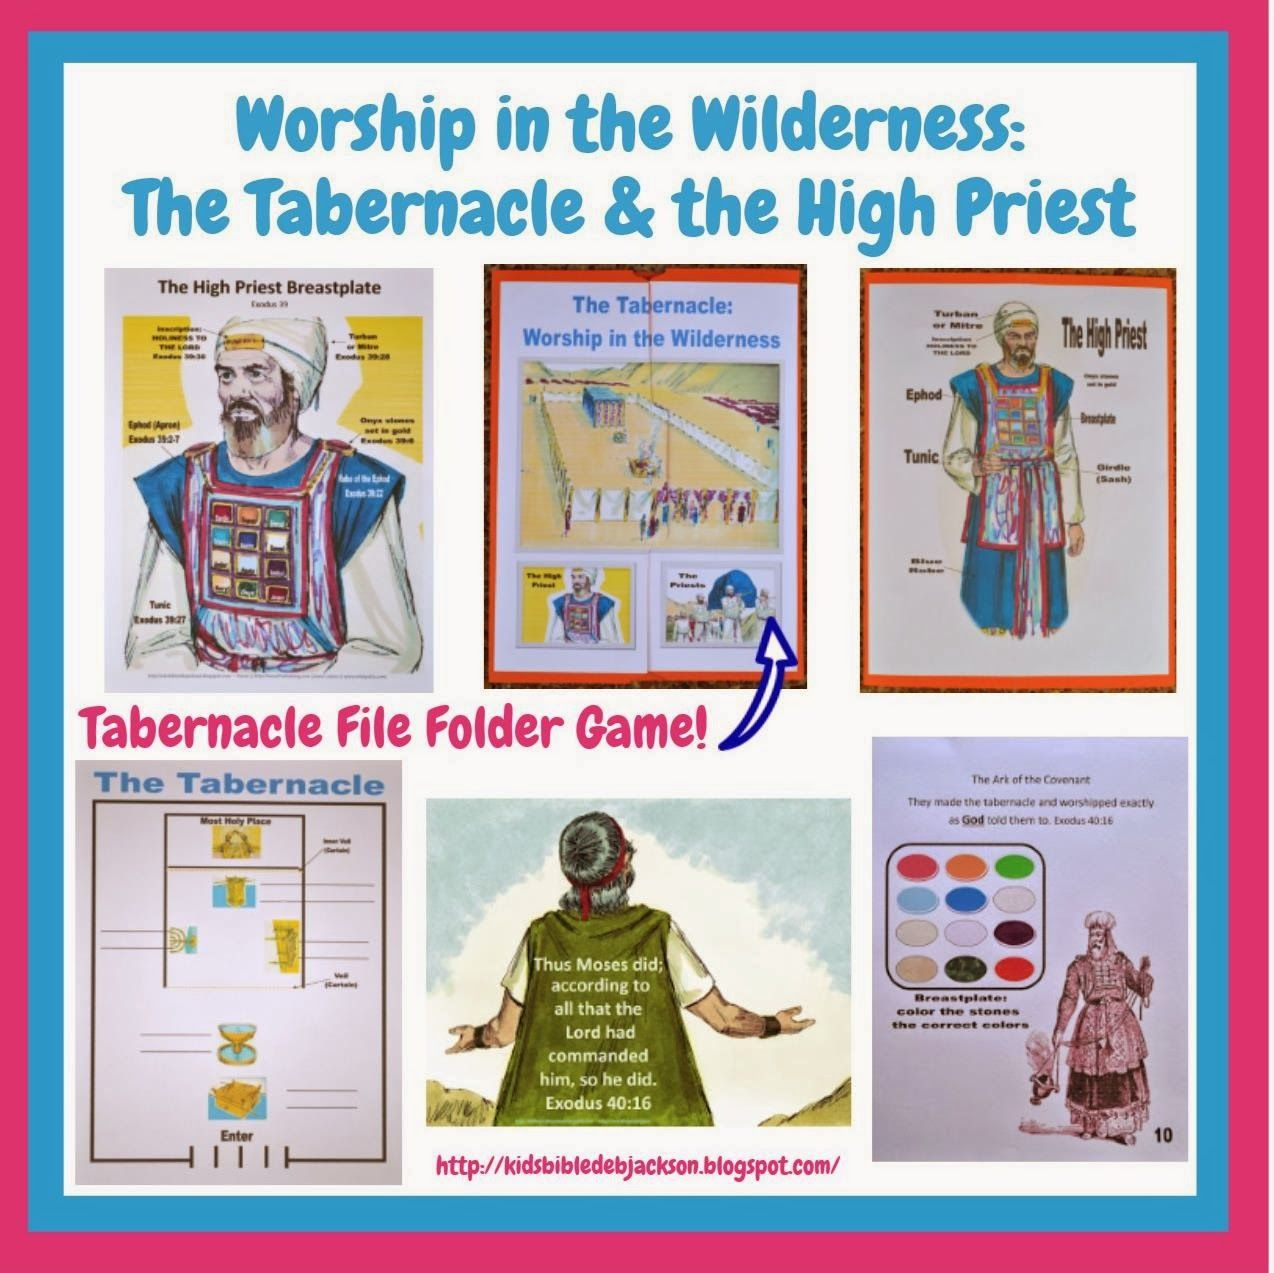 This Is A Very Condensed Lesson On The Tabernacle For The